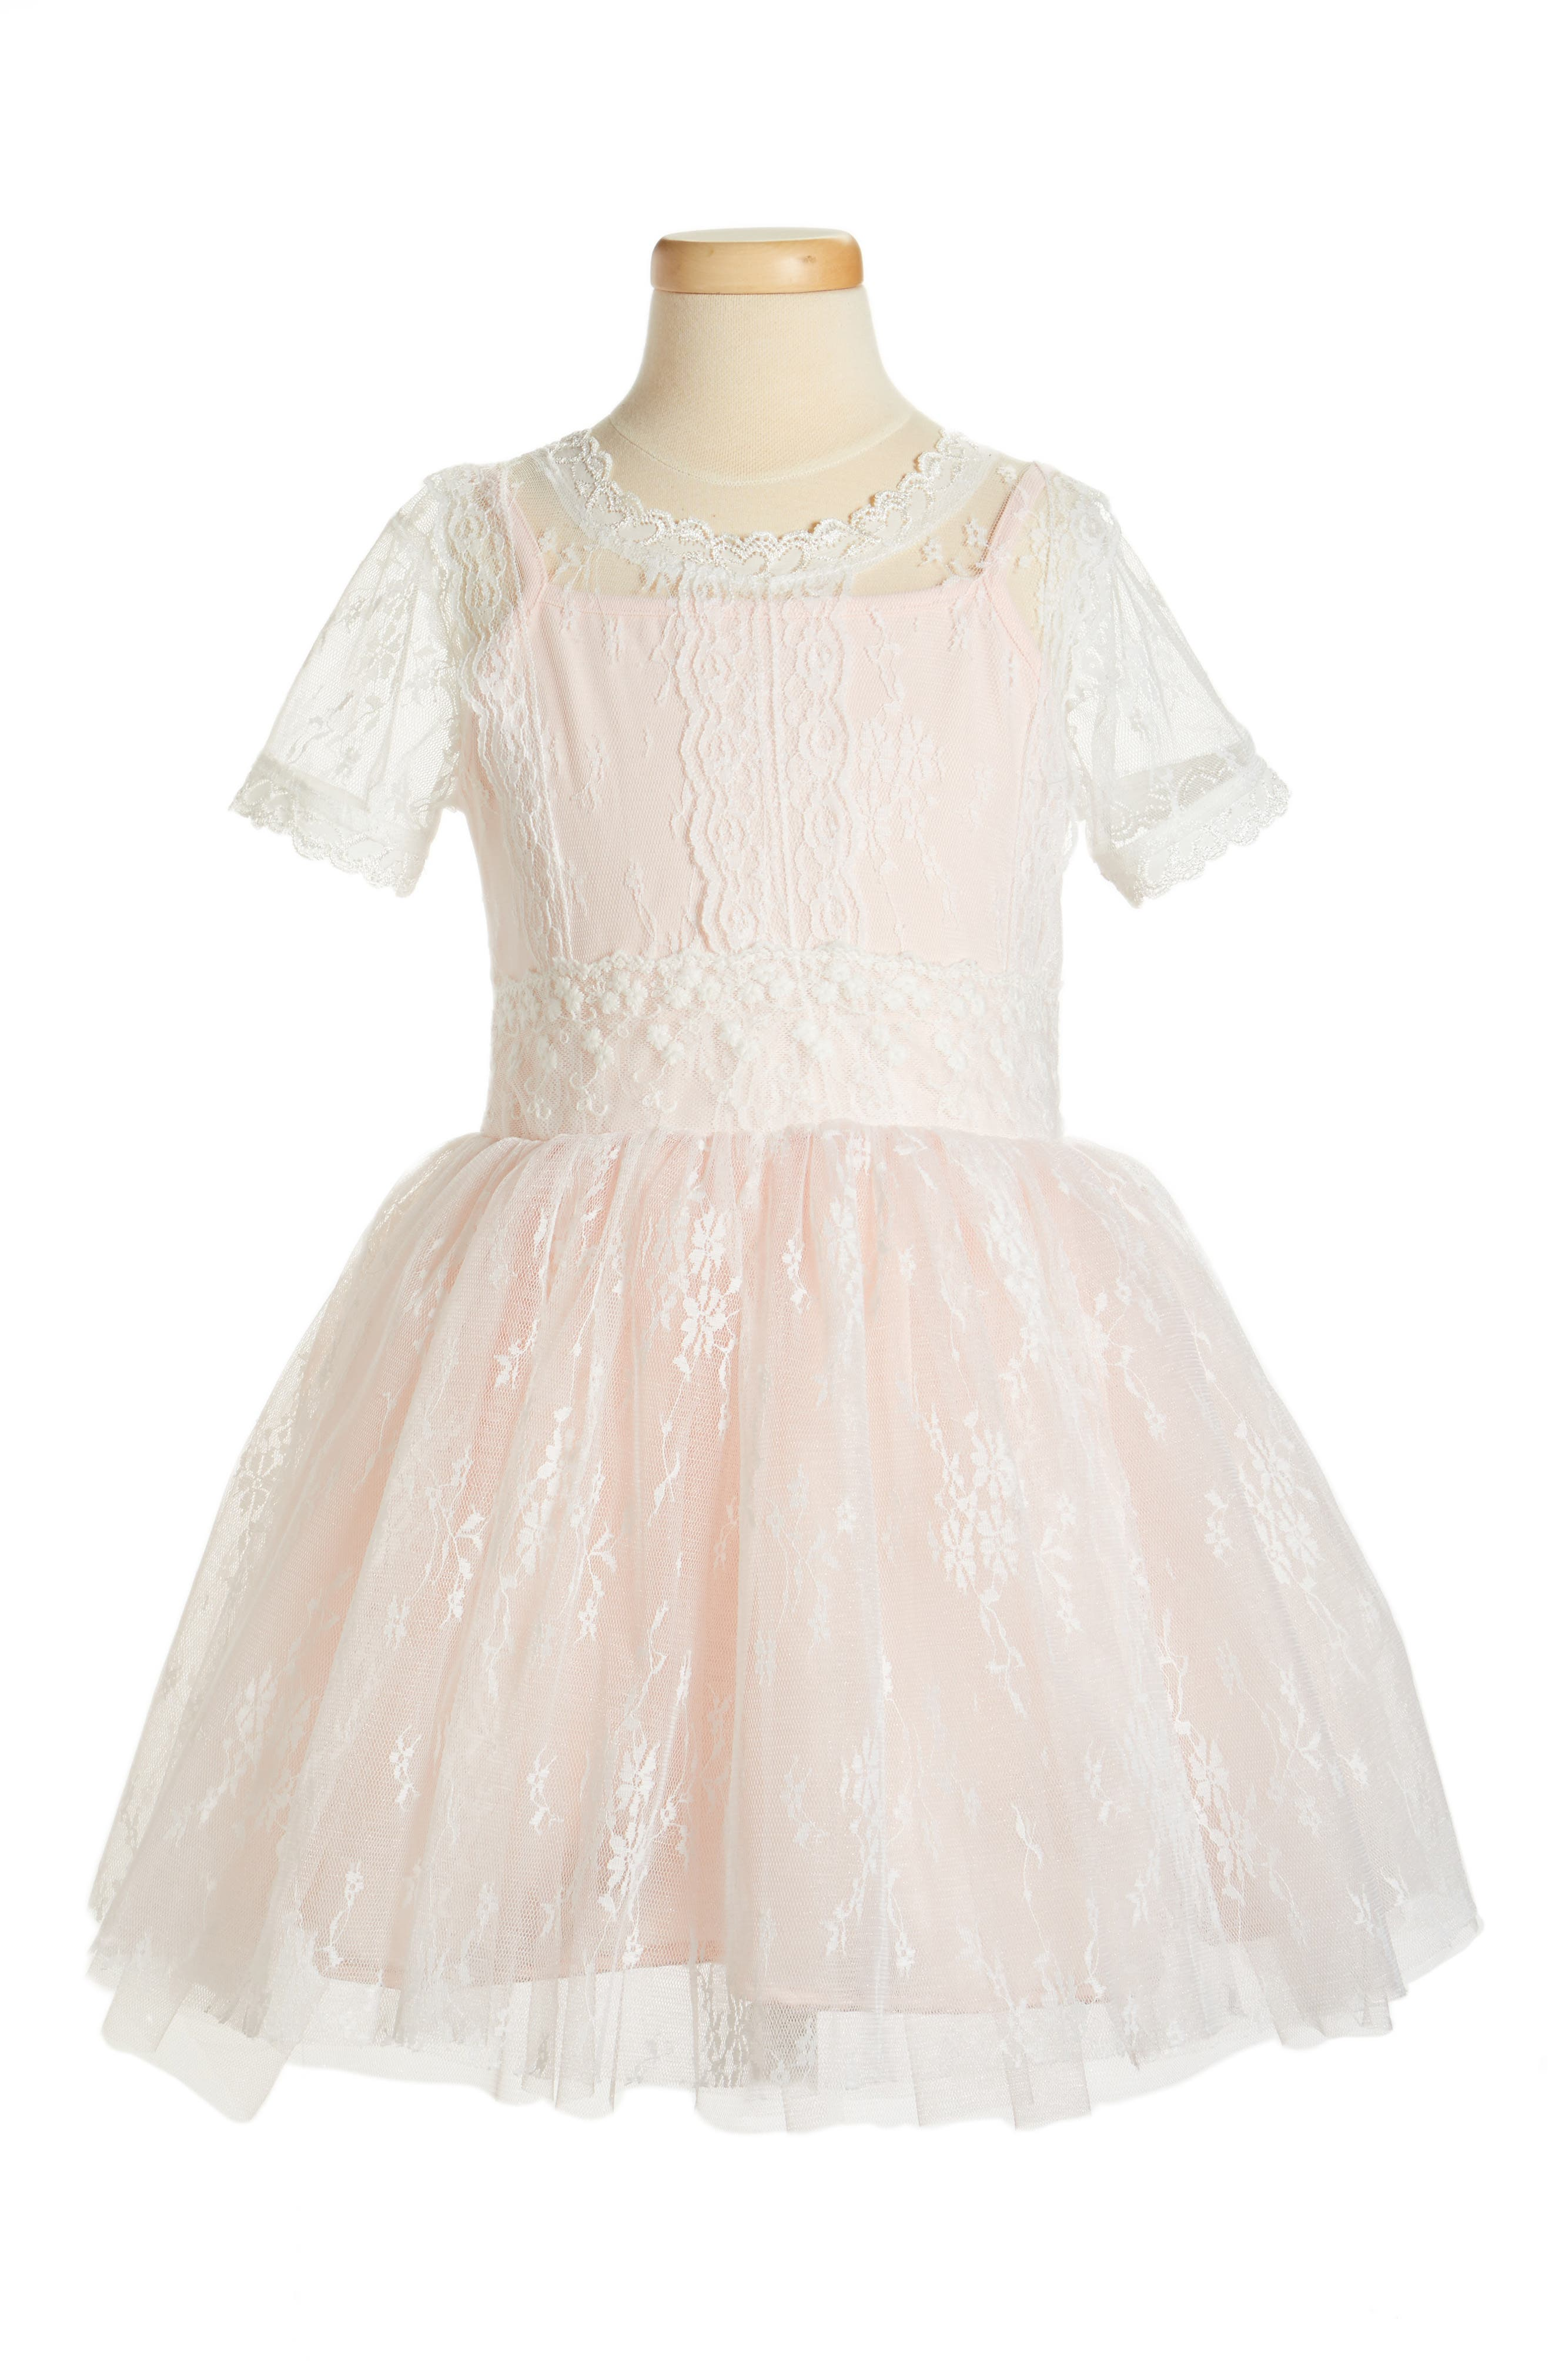 Popatu Lace Dress (Toddler Girls, Little Girls & Big Girls)